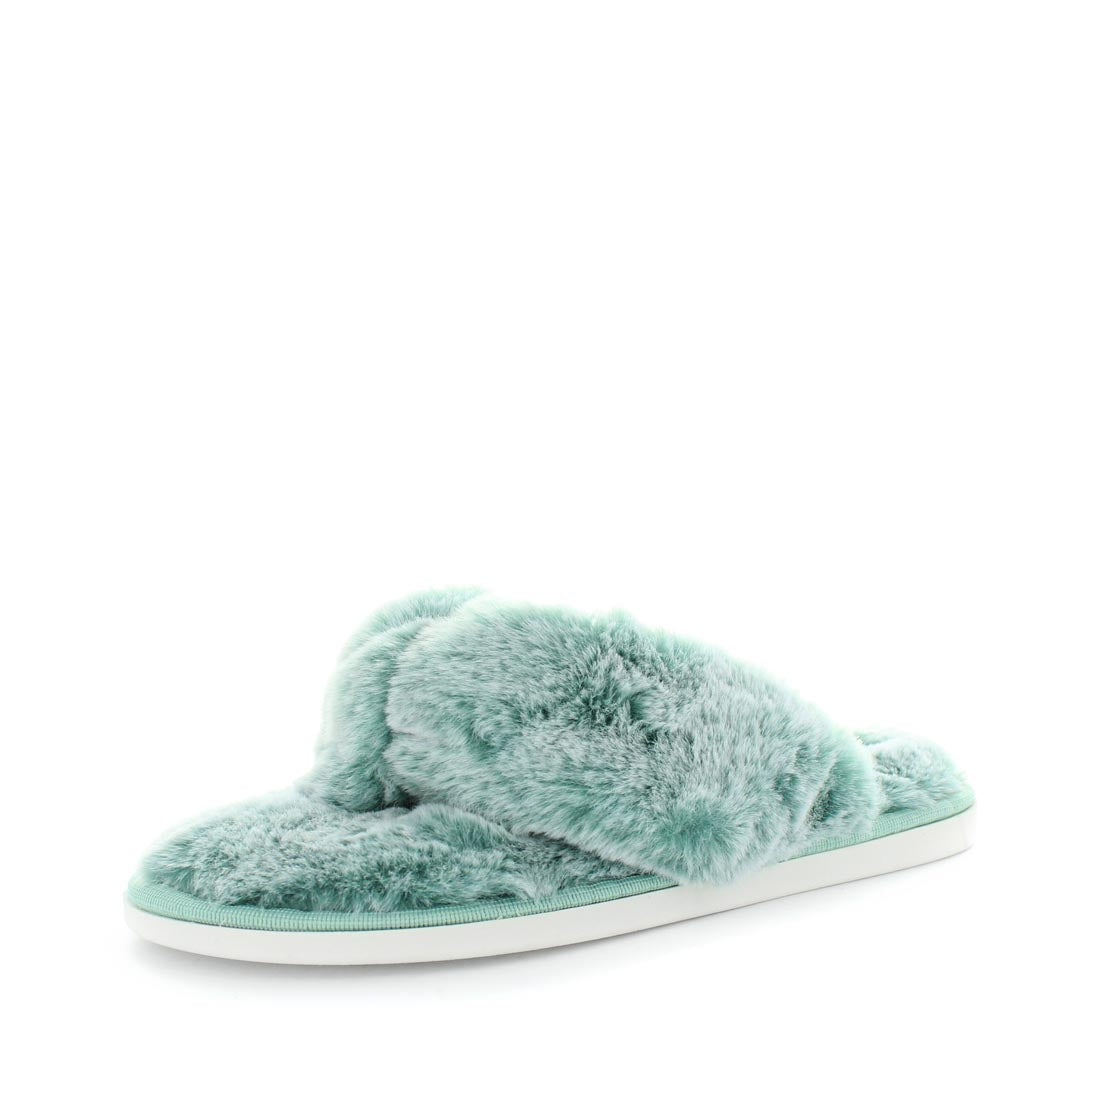 EDORA by PANDA - iShoes - NEW ARRIVALS, What's New, What's New: Women's New Arrivals, Women's Shoes: Slippers - FOOTWEAR-FOOTWEAR